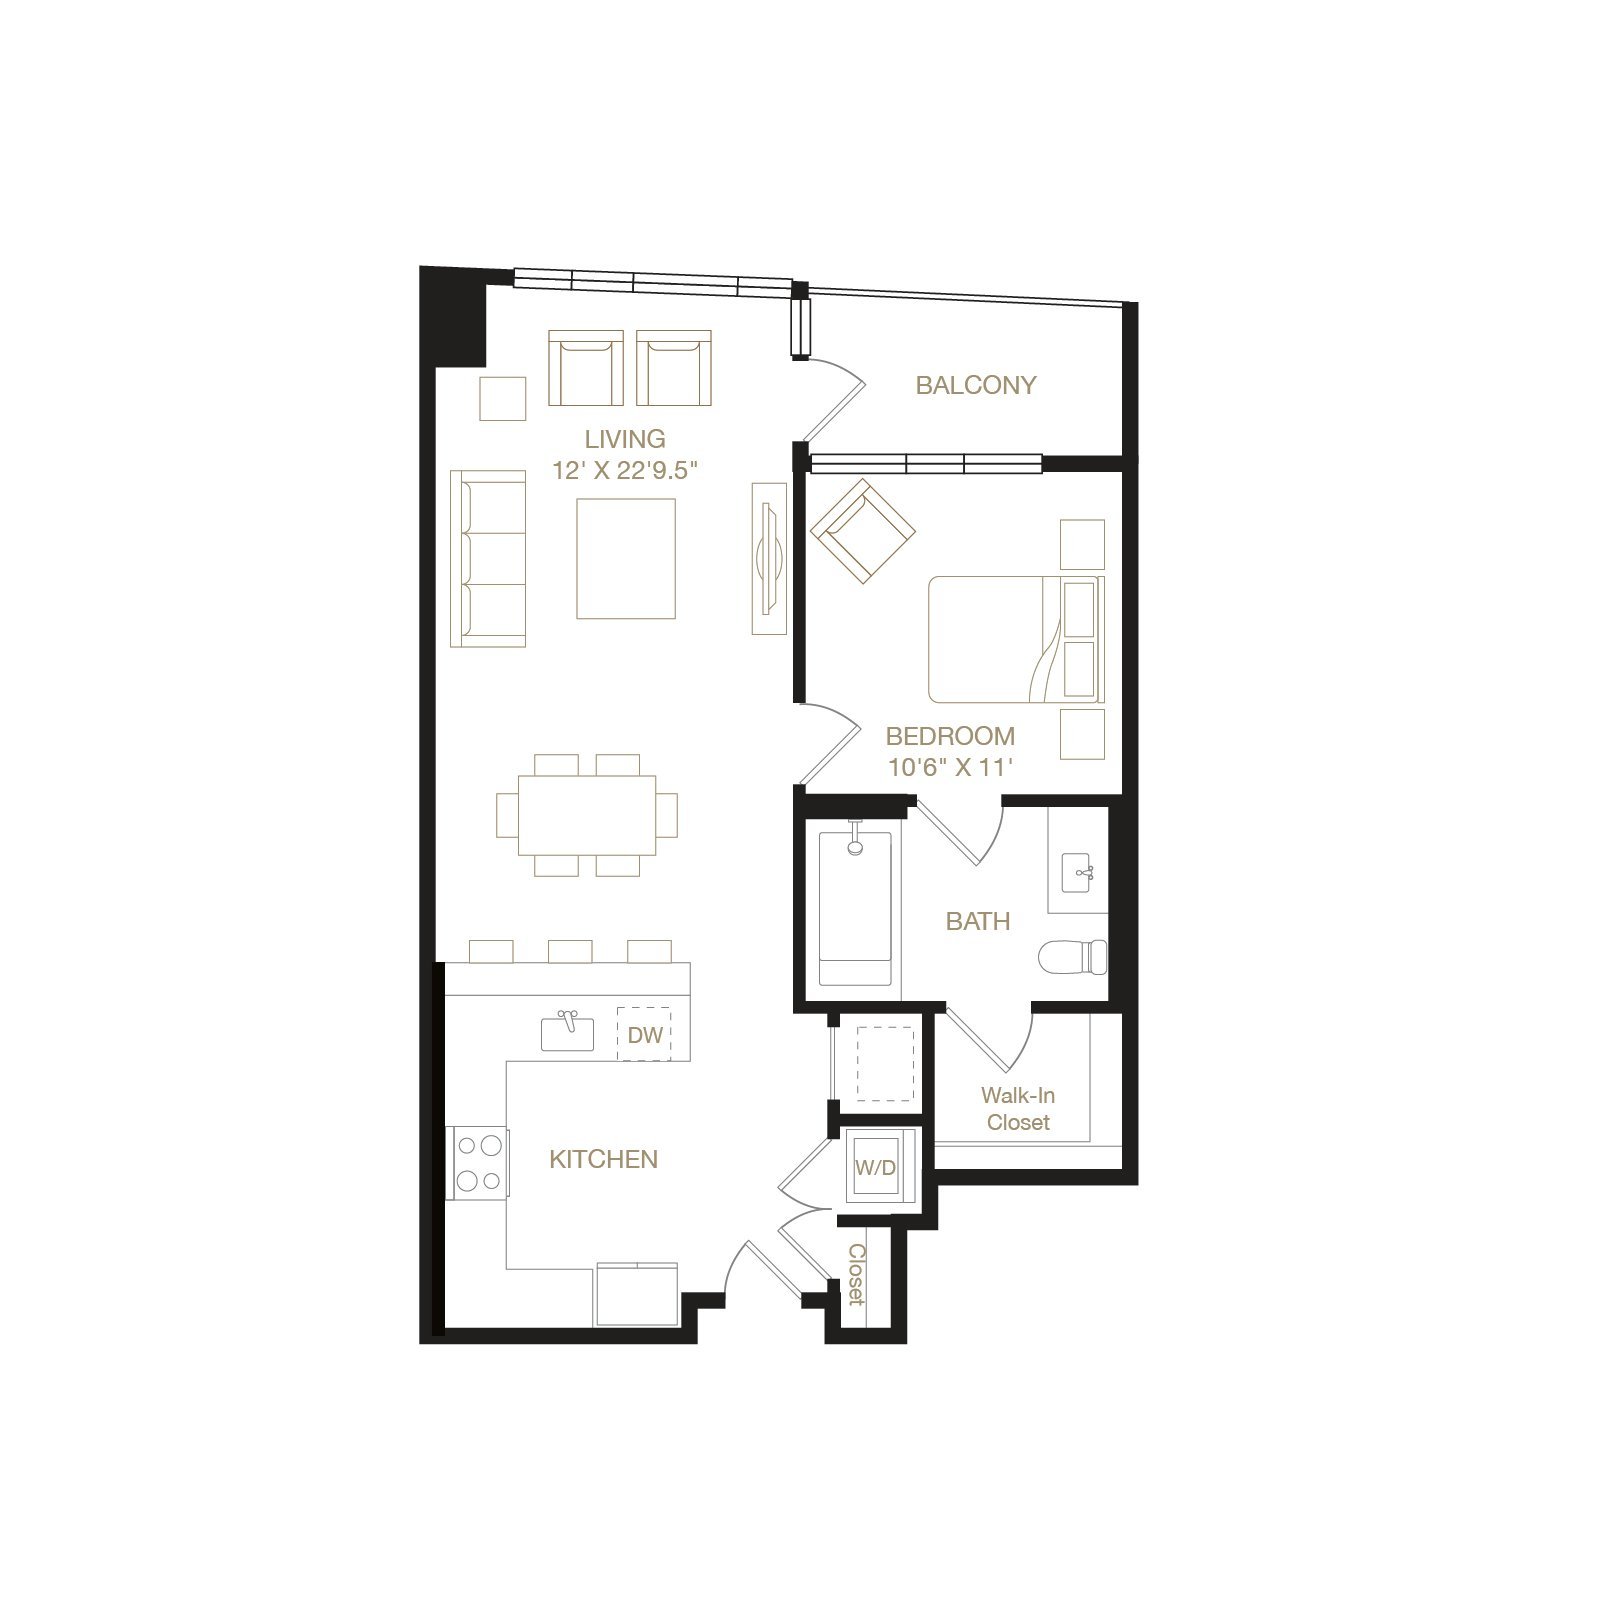 Eastshore floor plan diagram. One bedroom, one bathroom, a kitchen and living  area, a terrace, and  washer dryer.